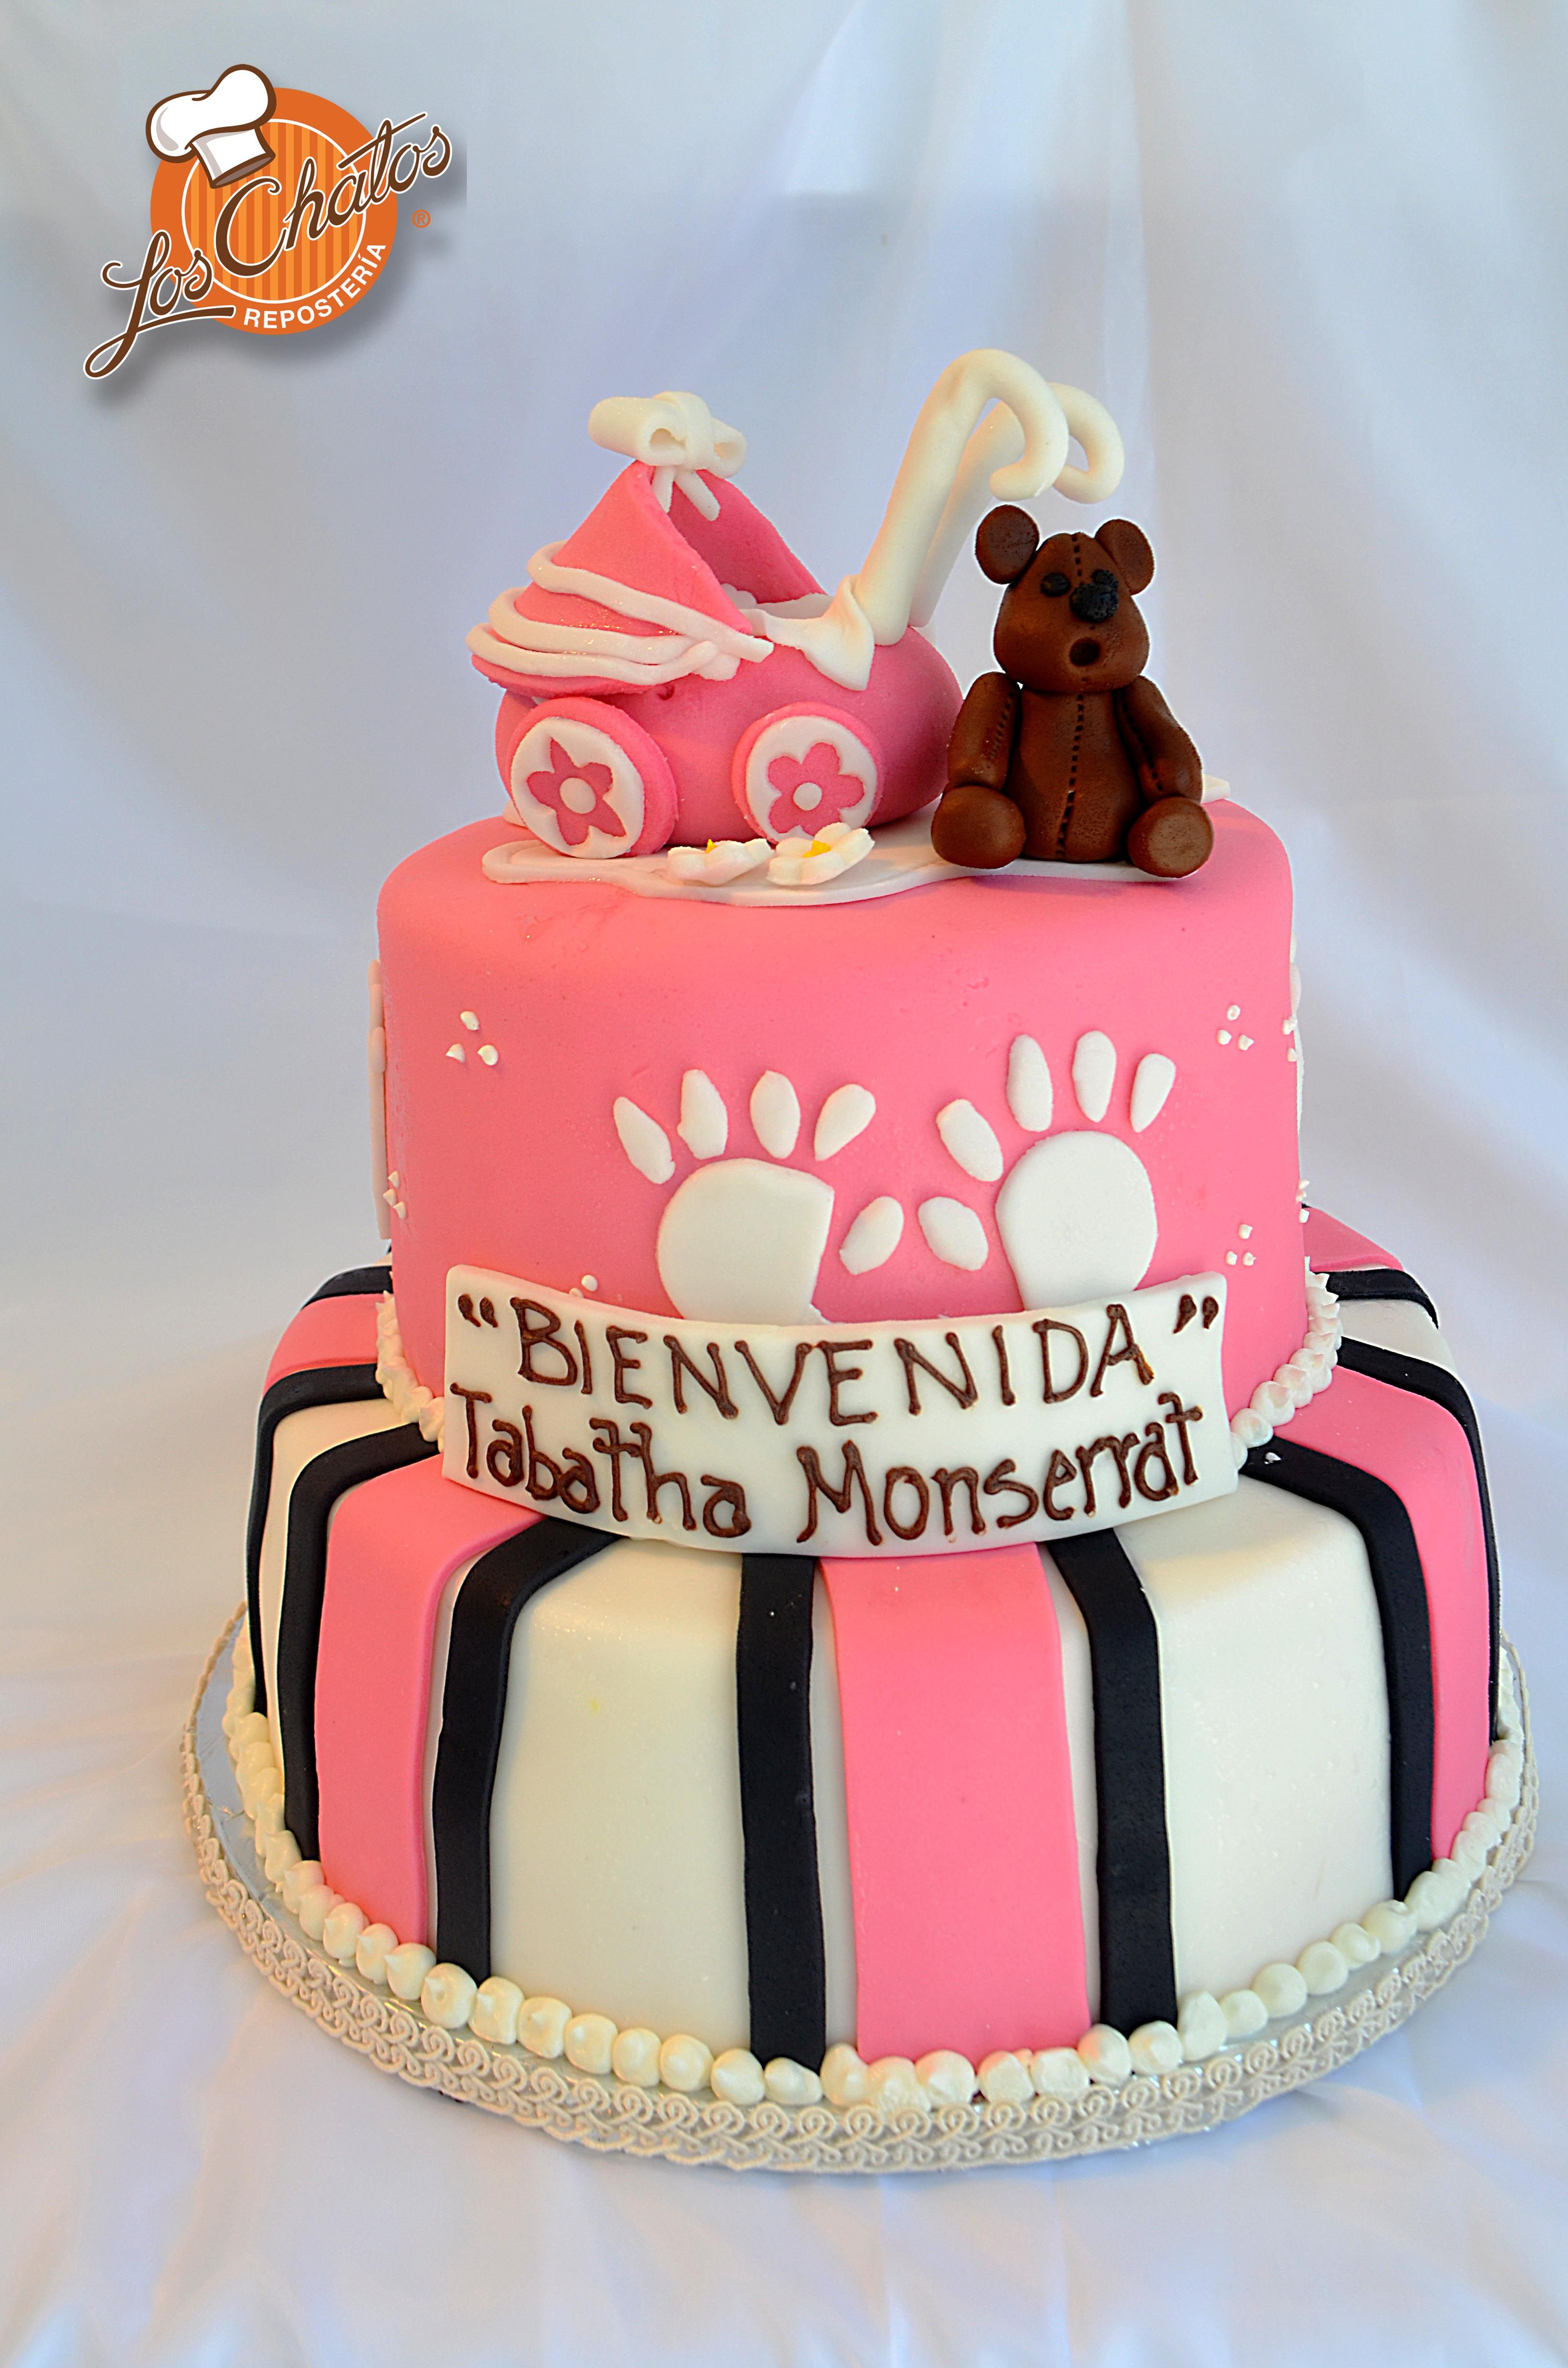 Pastel Baby Shower #loschatos #niña #babyshower #cake